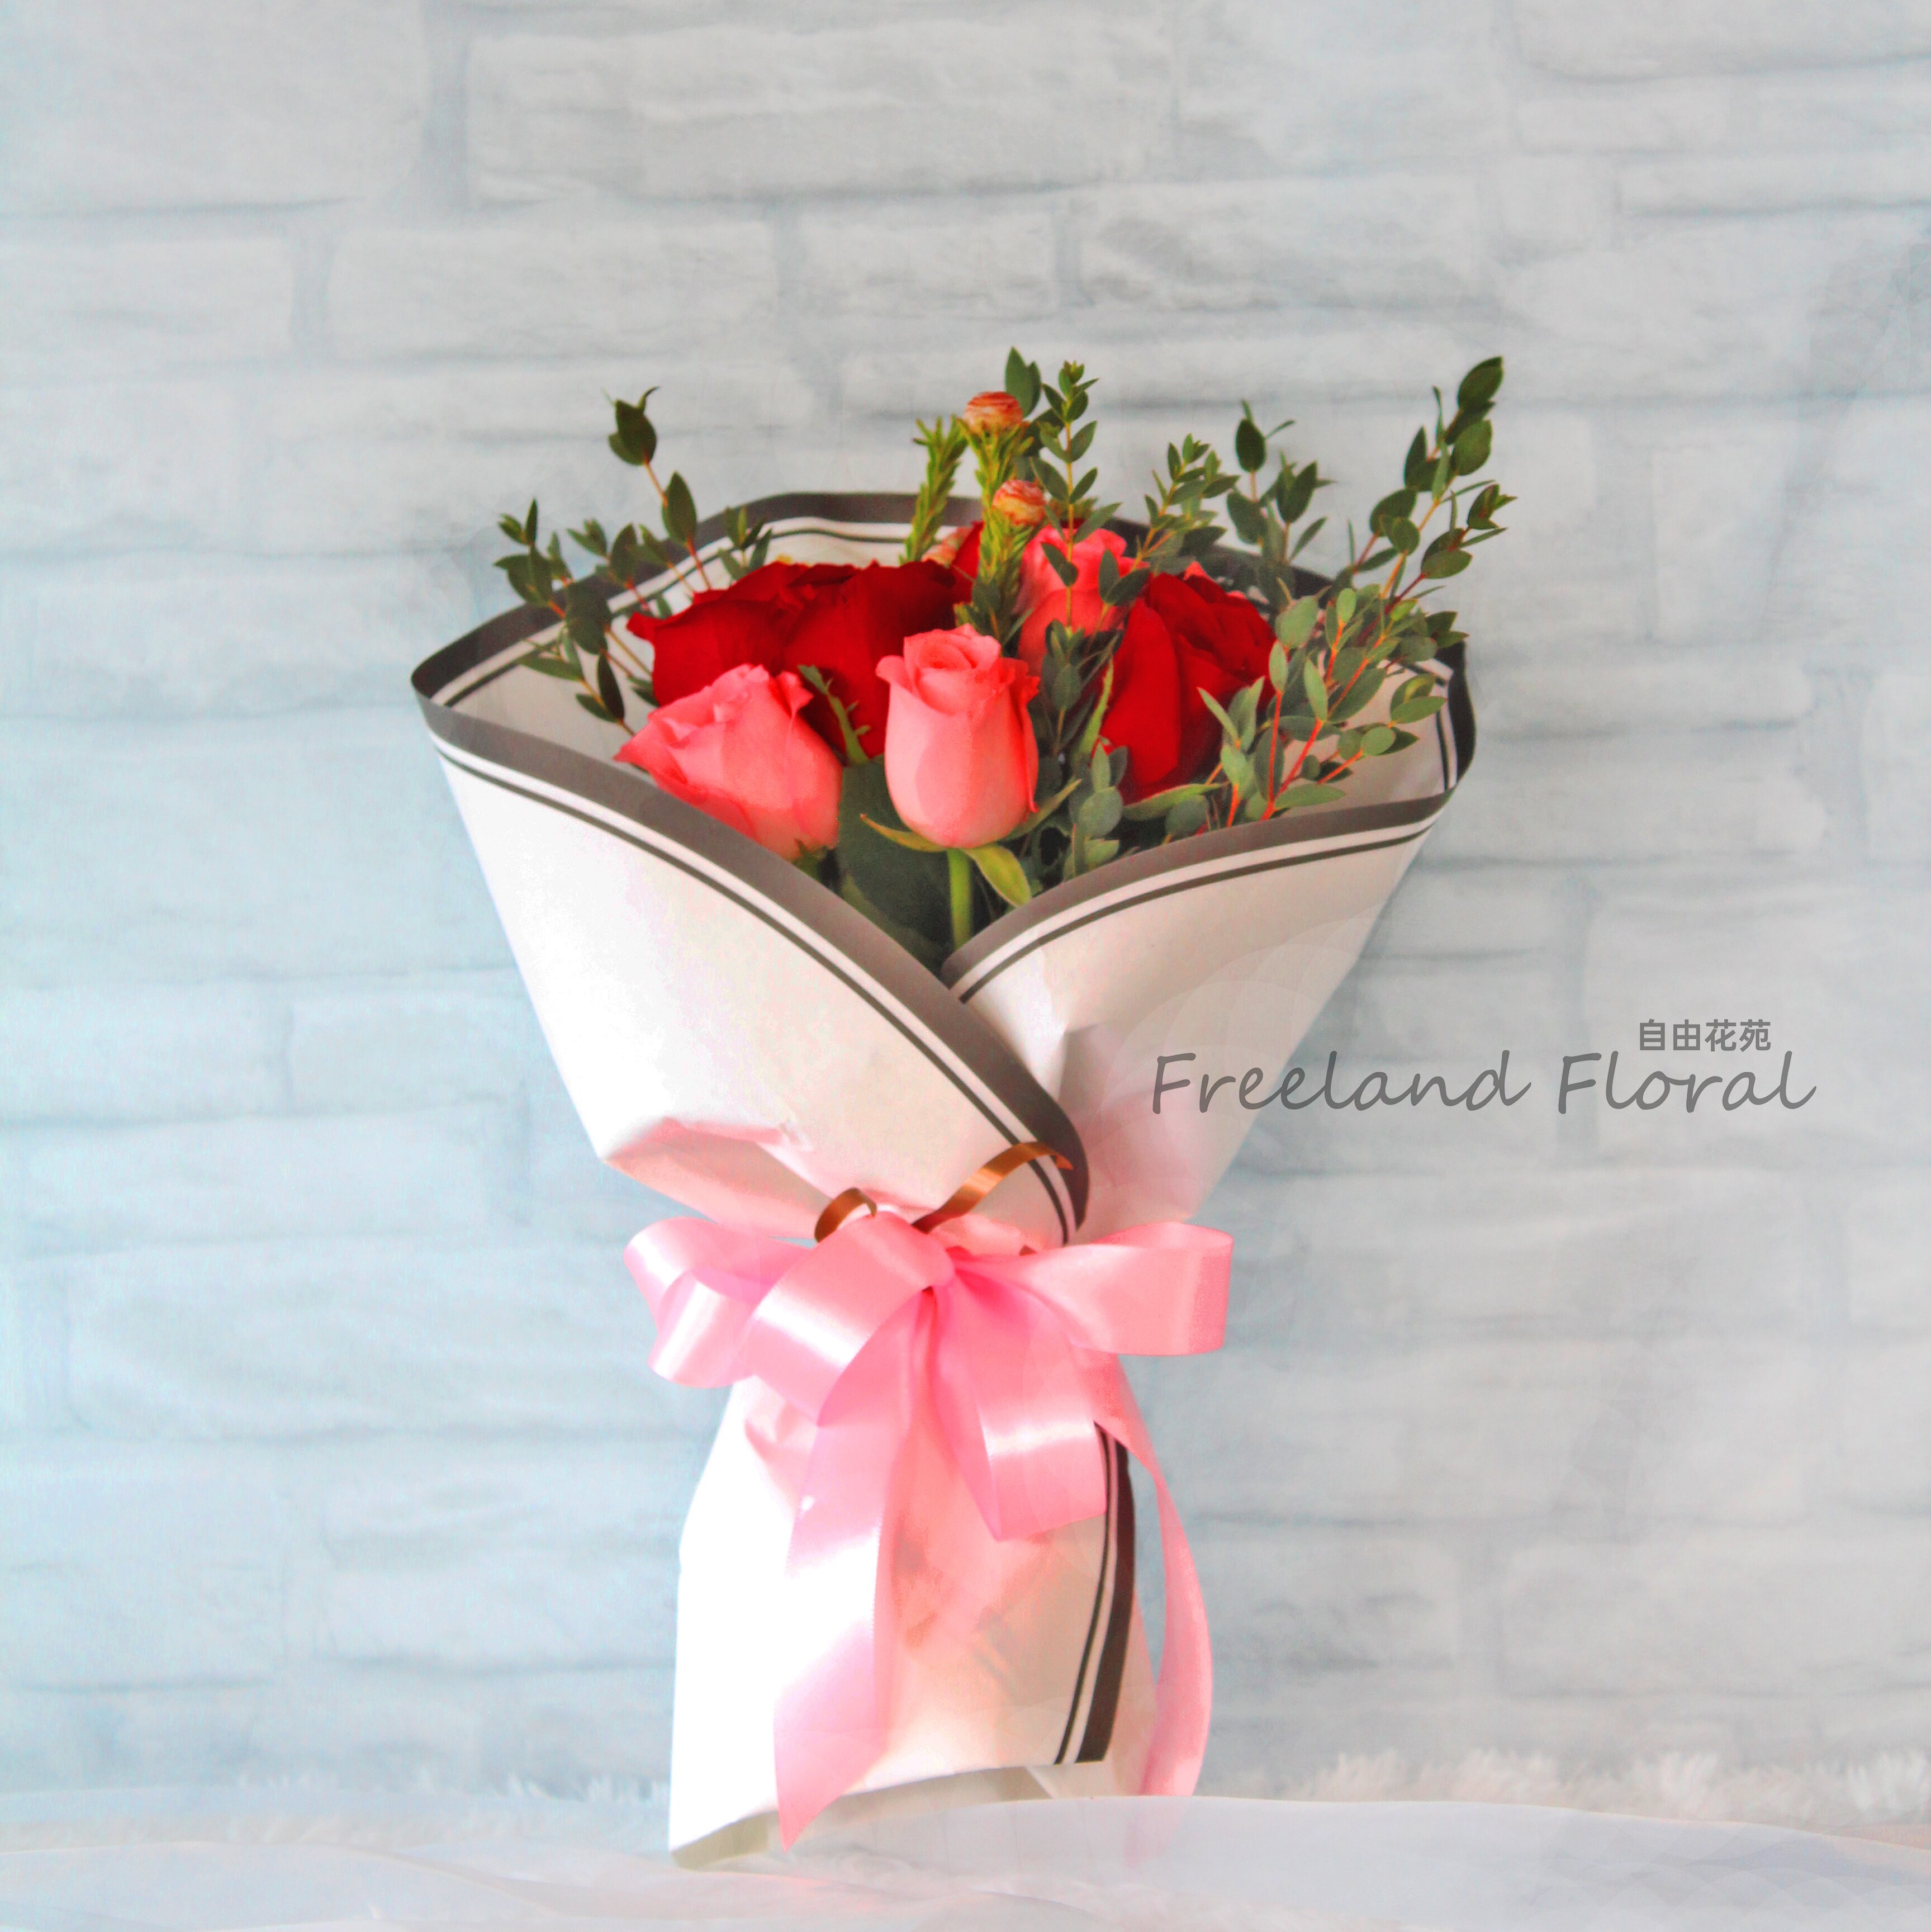 Waiting For Love - Freeland Floral 自由花苑